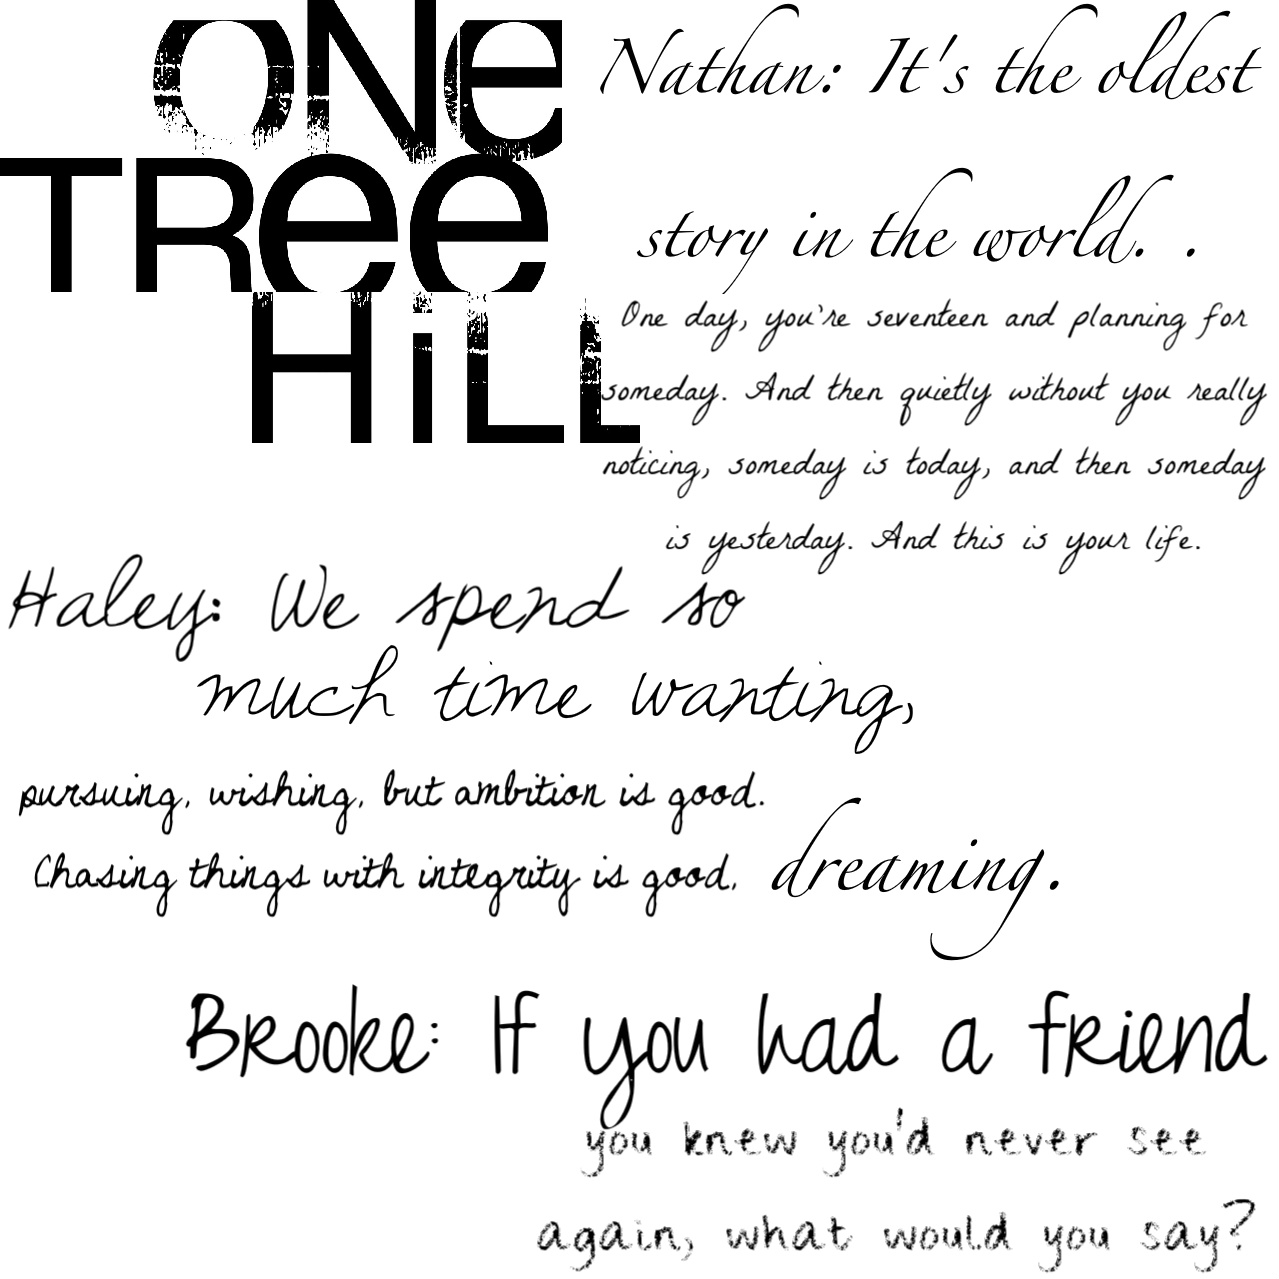 Good Country Song Quotes: Family One Tree Hill Quotes. QuotesGram